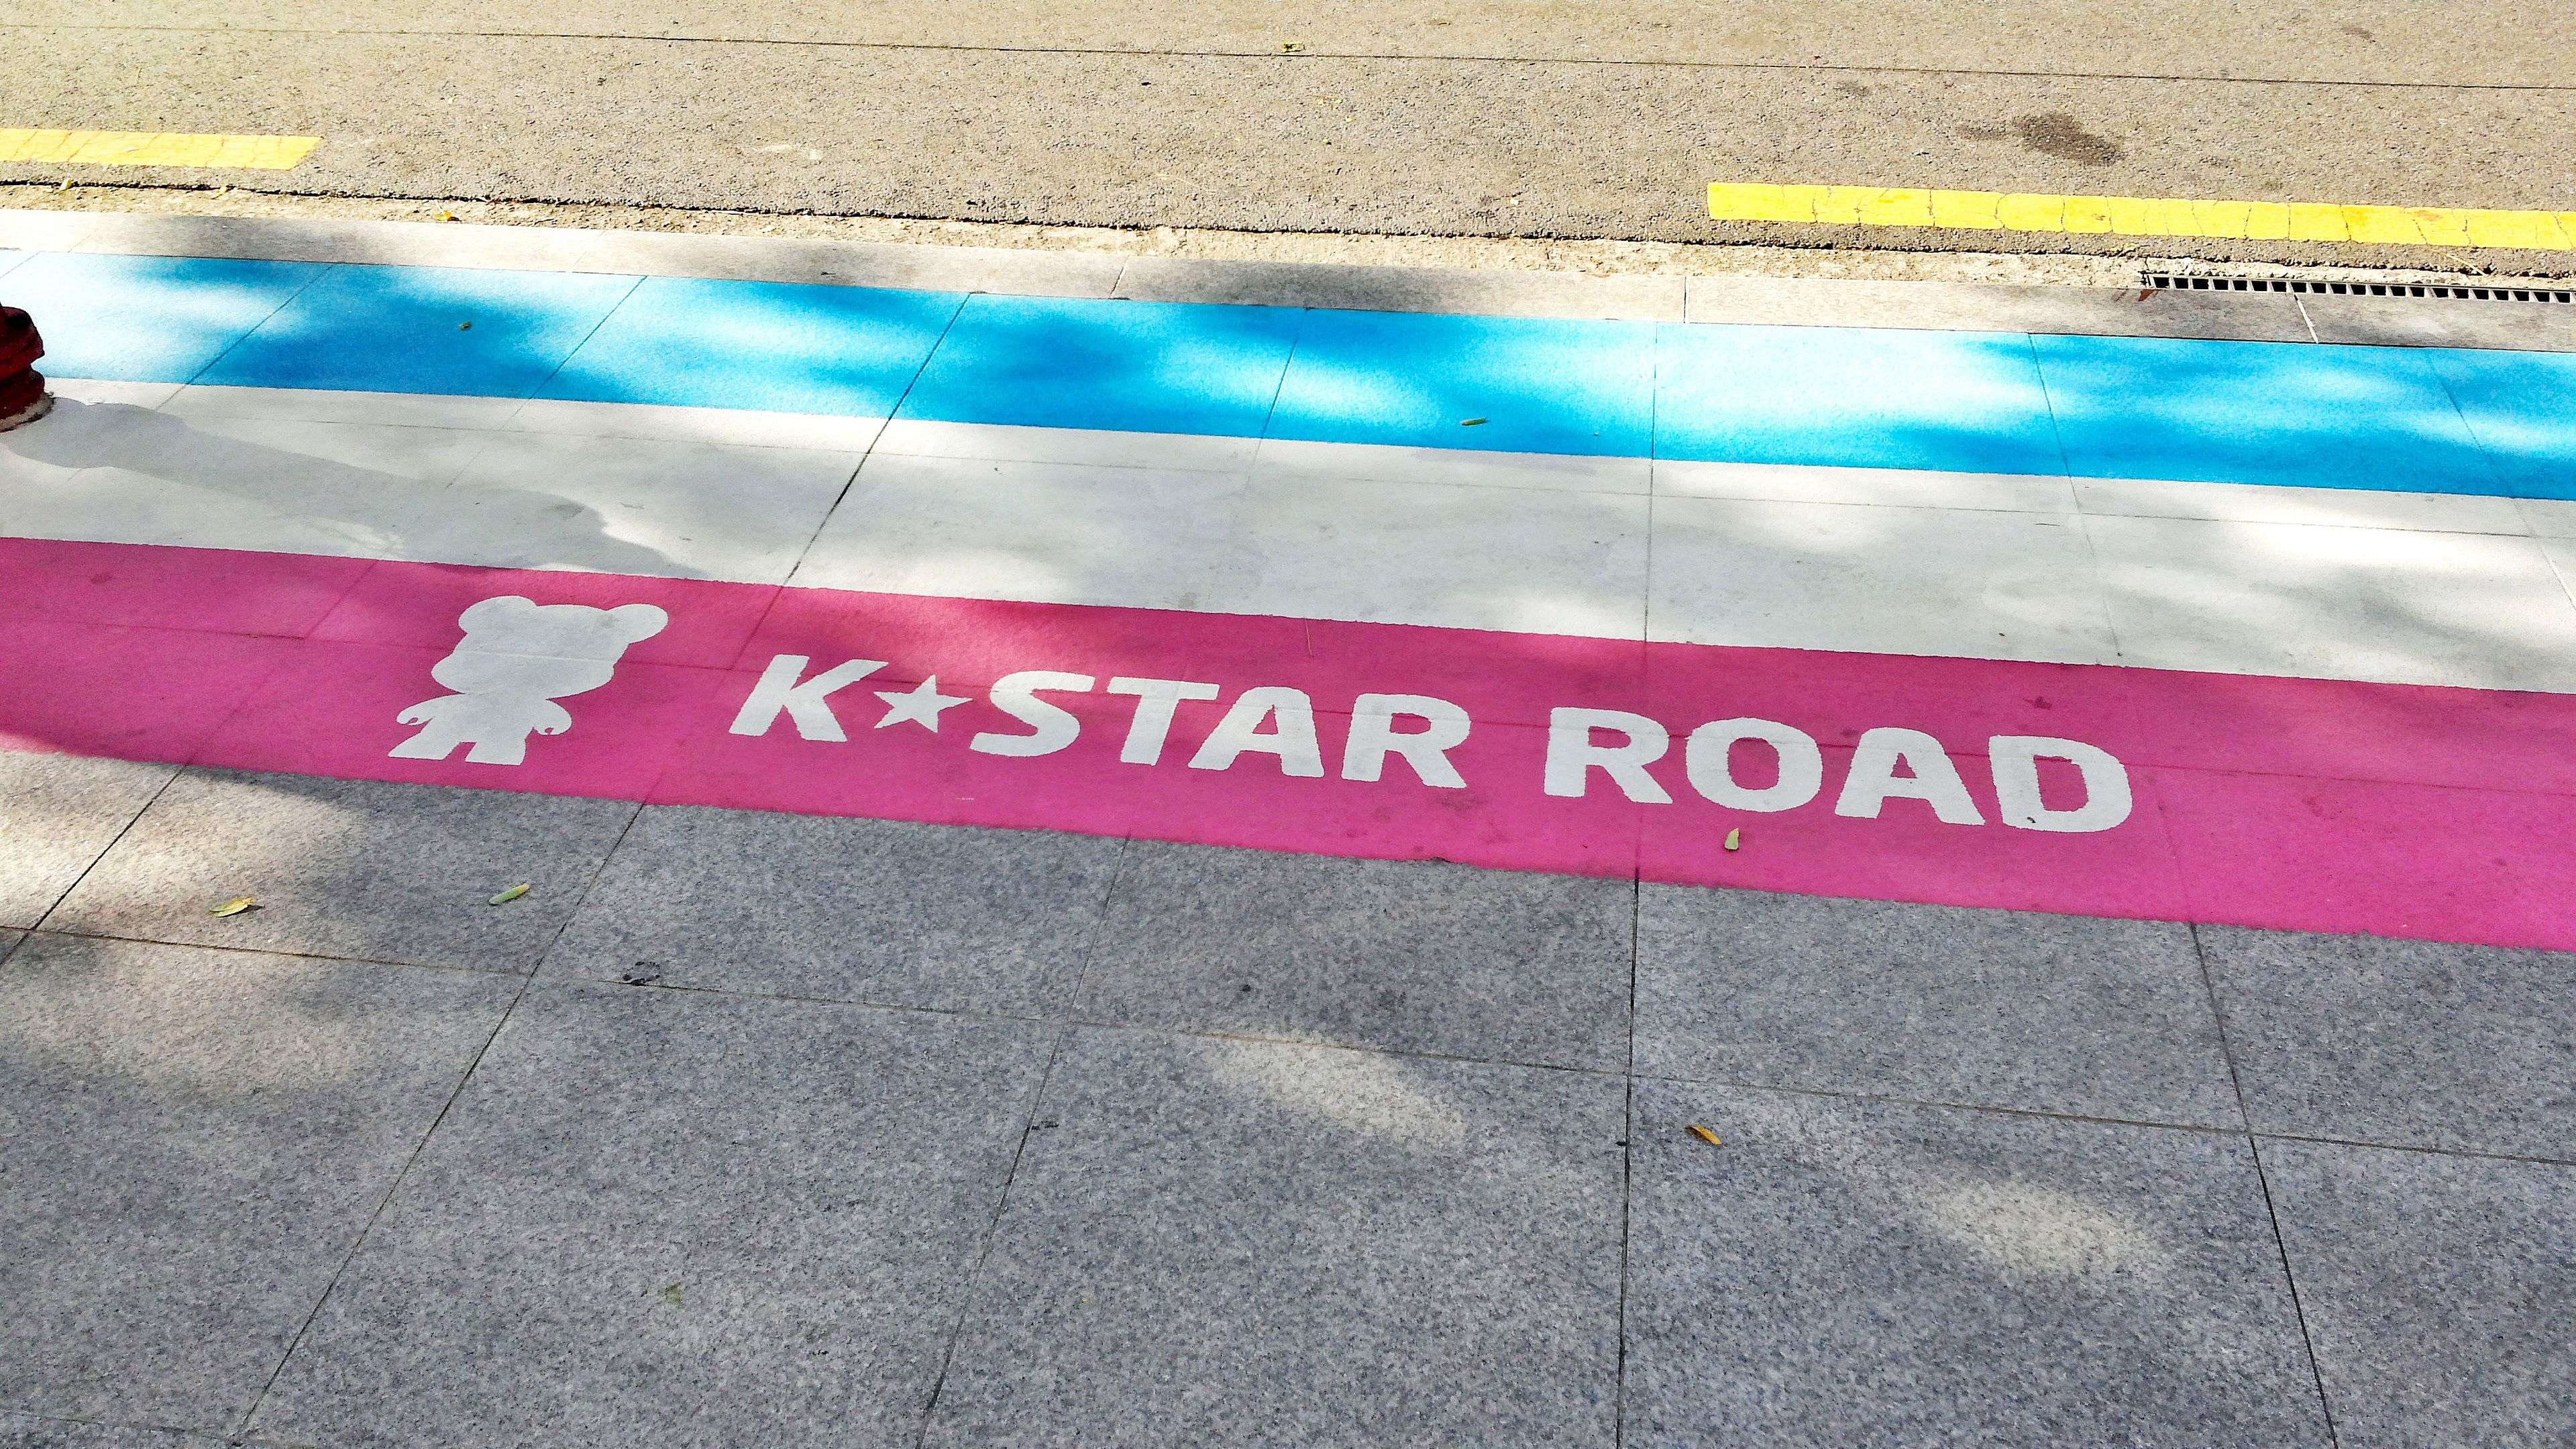 Stripes painted on the sidewalk label K Star Road in Seoul